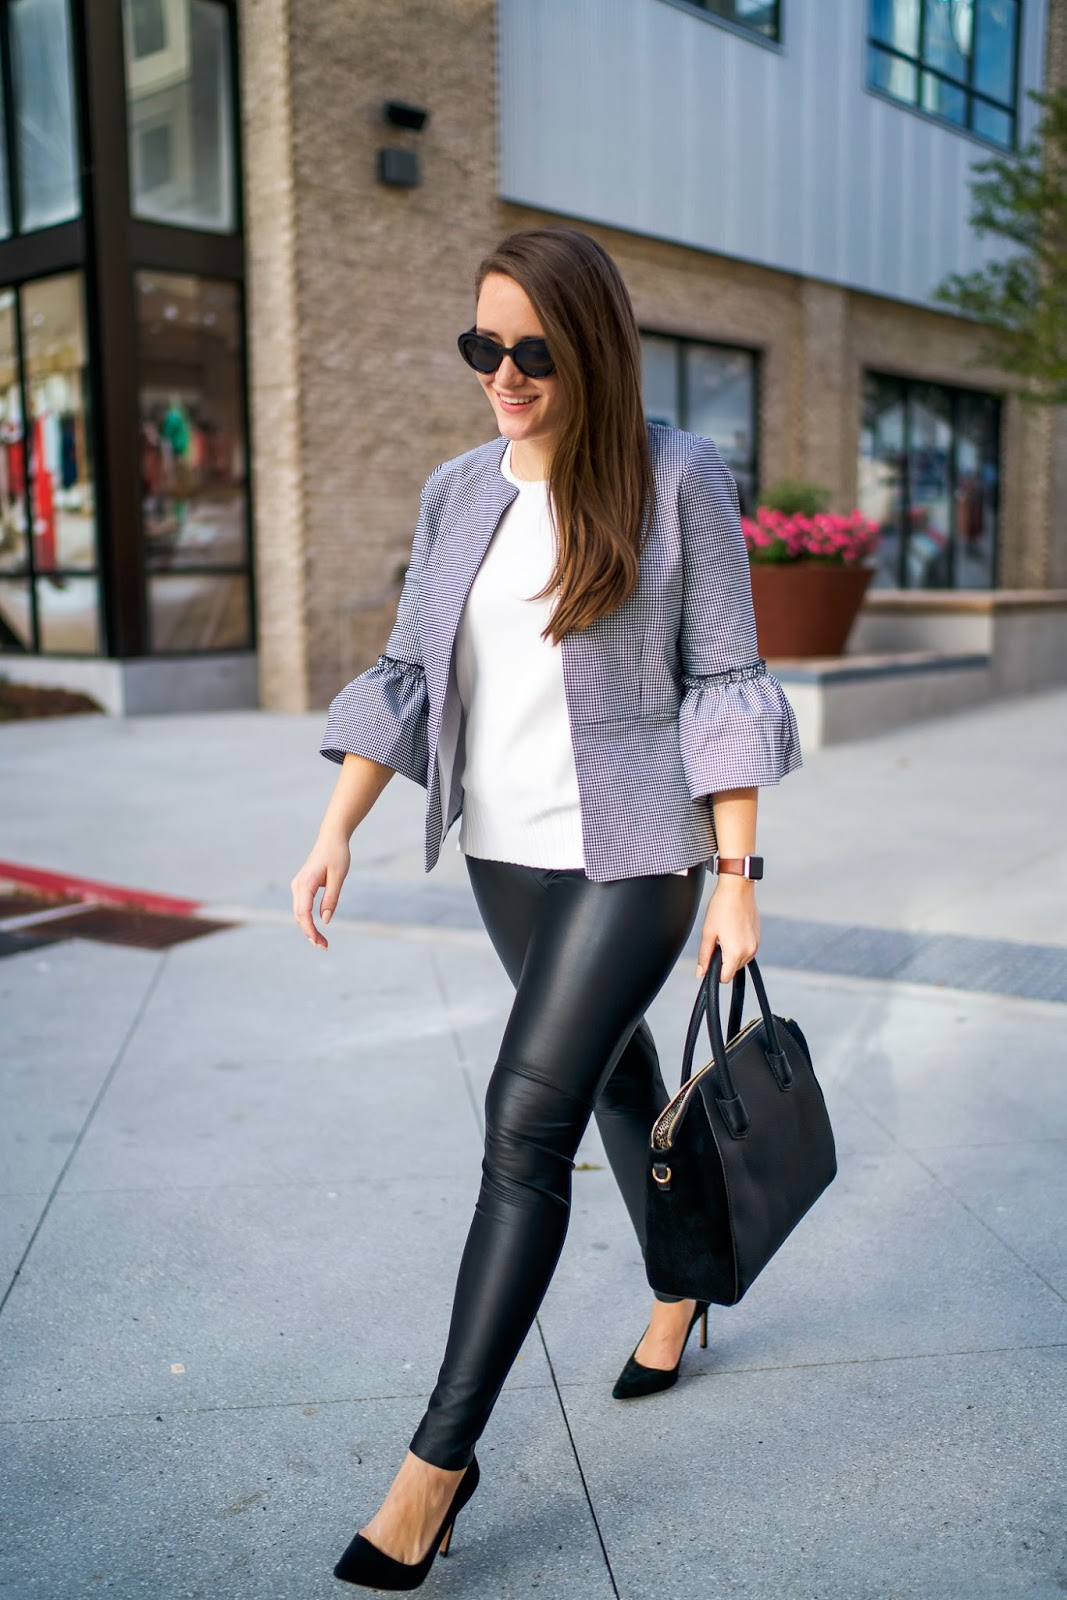 Here's How You Can Stay Classy While Wearing Leggings At Work